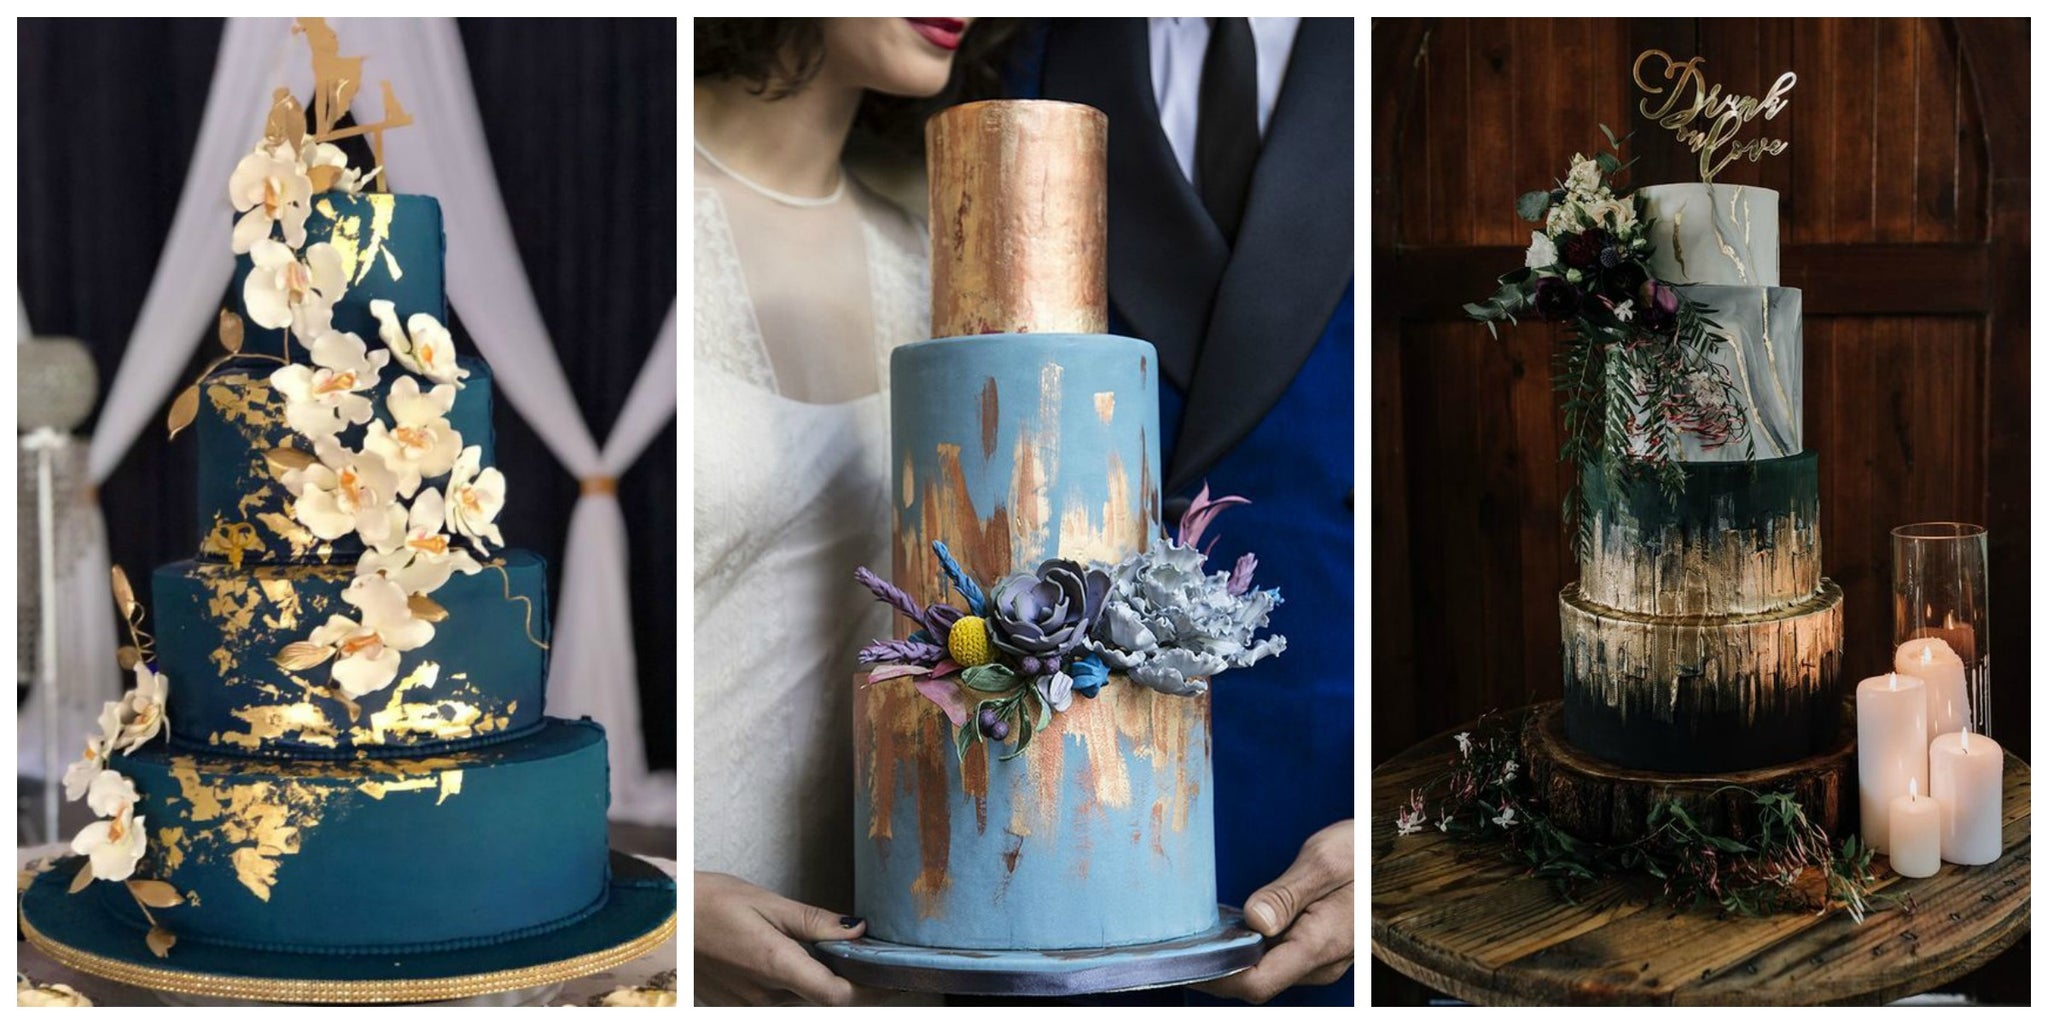 Blue Wedding Cake Trends for 2019